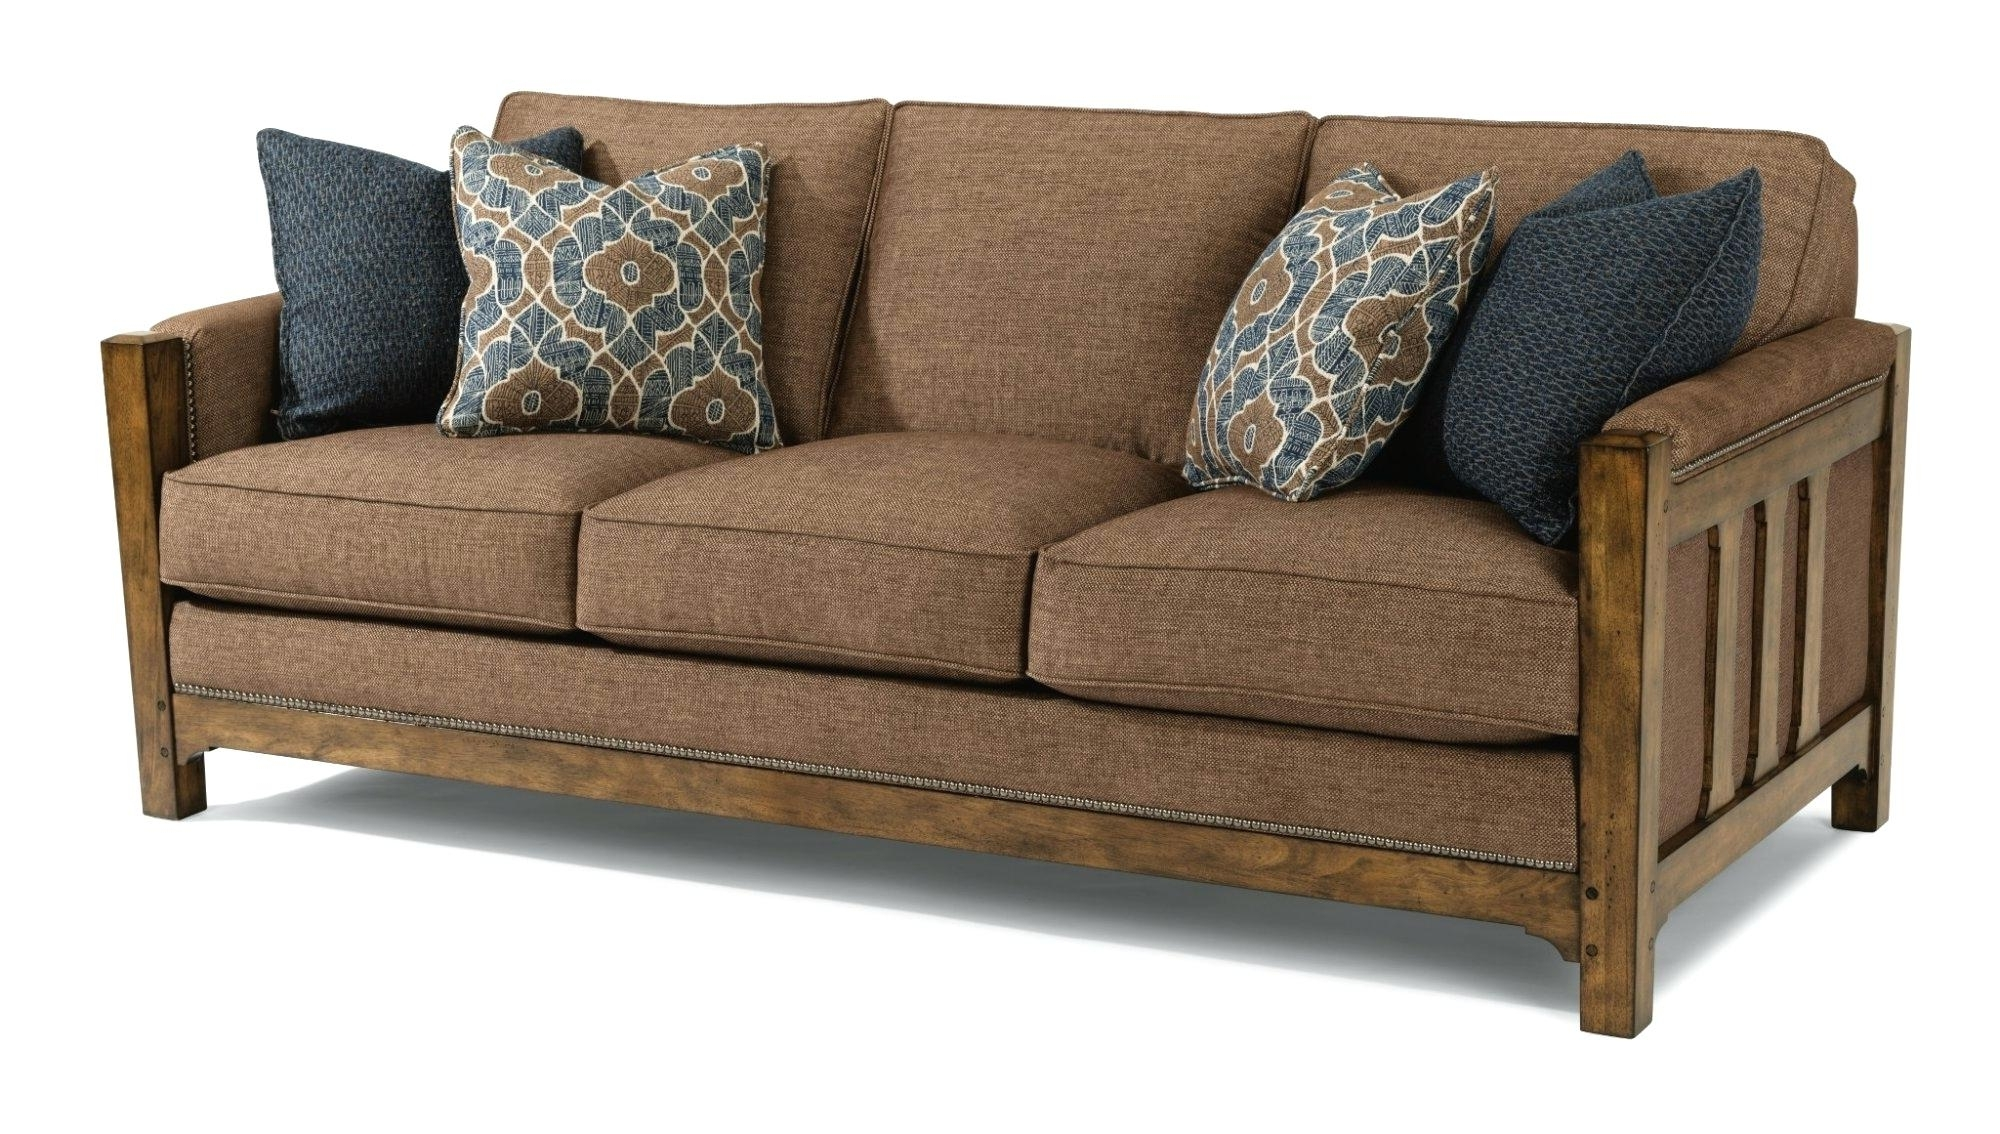 Lane Furniture Sofas For Popular Lane Furniture Sofas Sofa – 4Parkar (View 10 of 20)